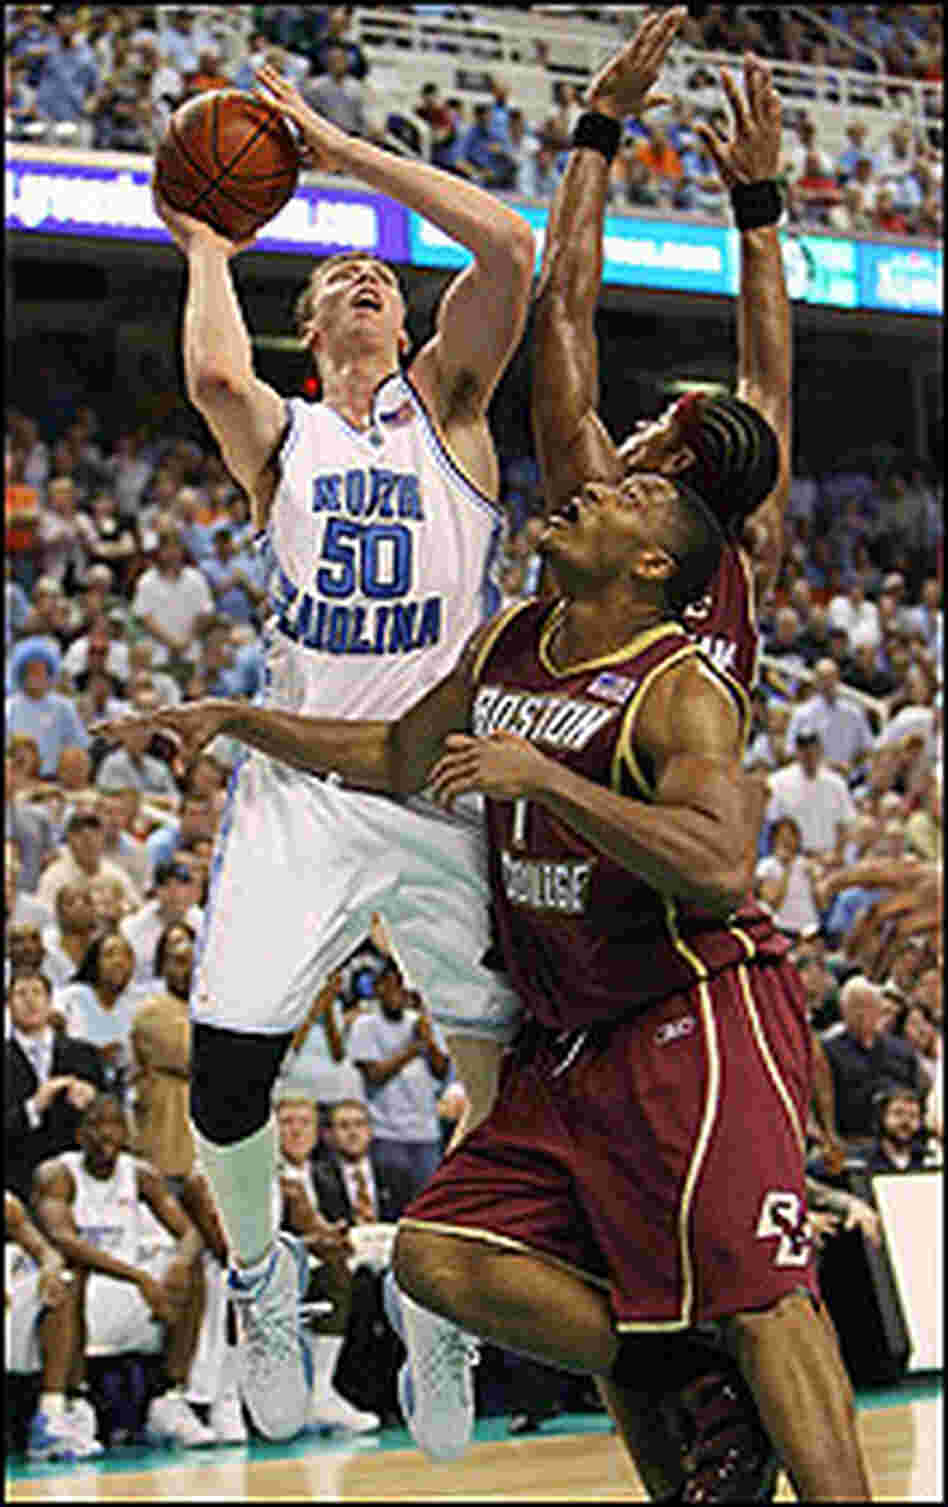 Tyler Hansbrough of North Carolina with the basketball.